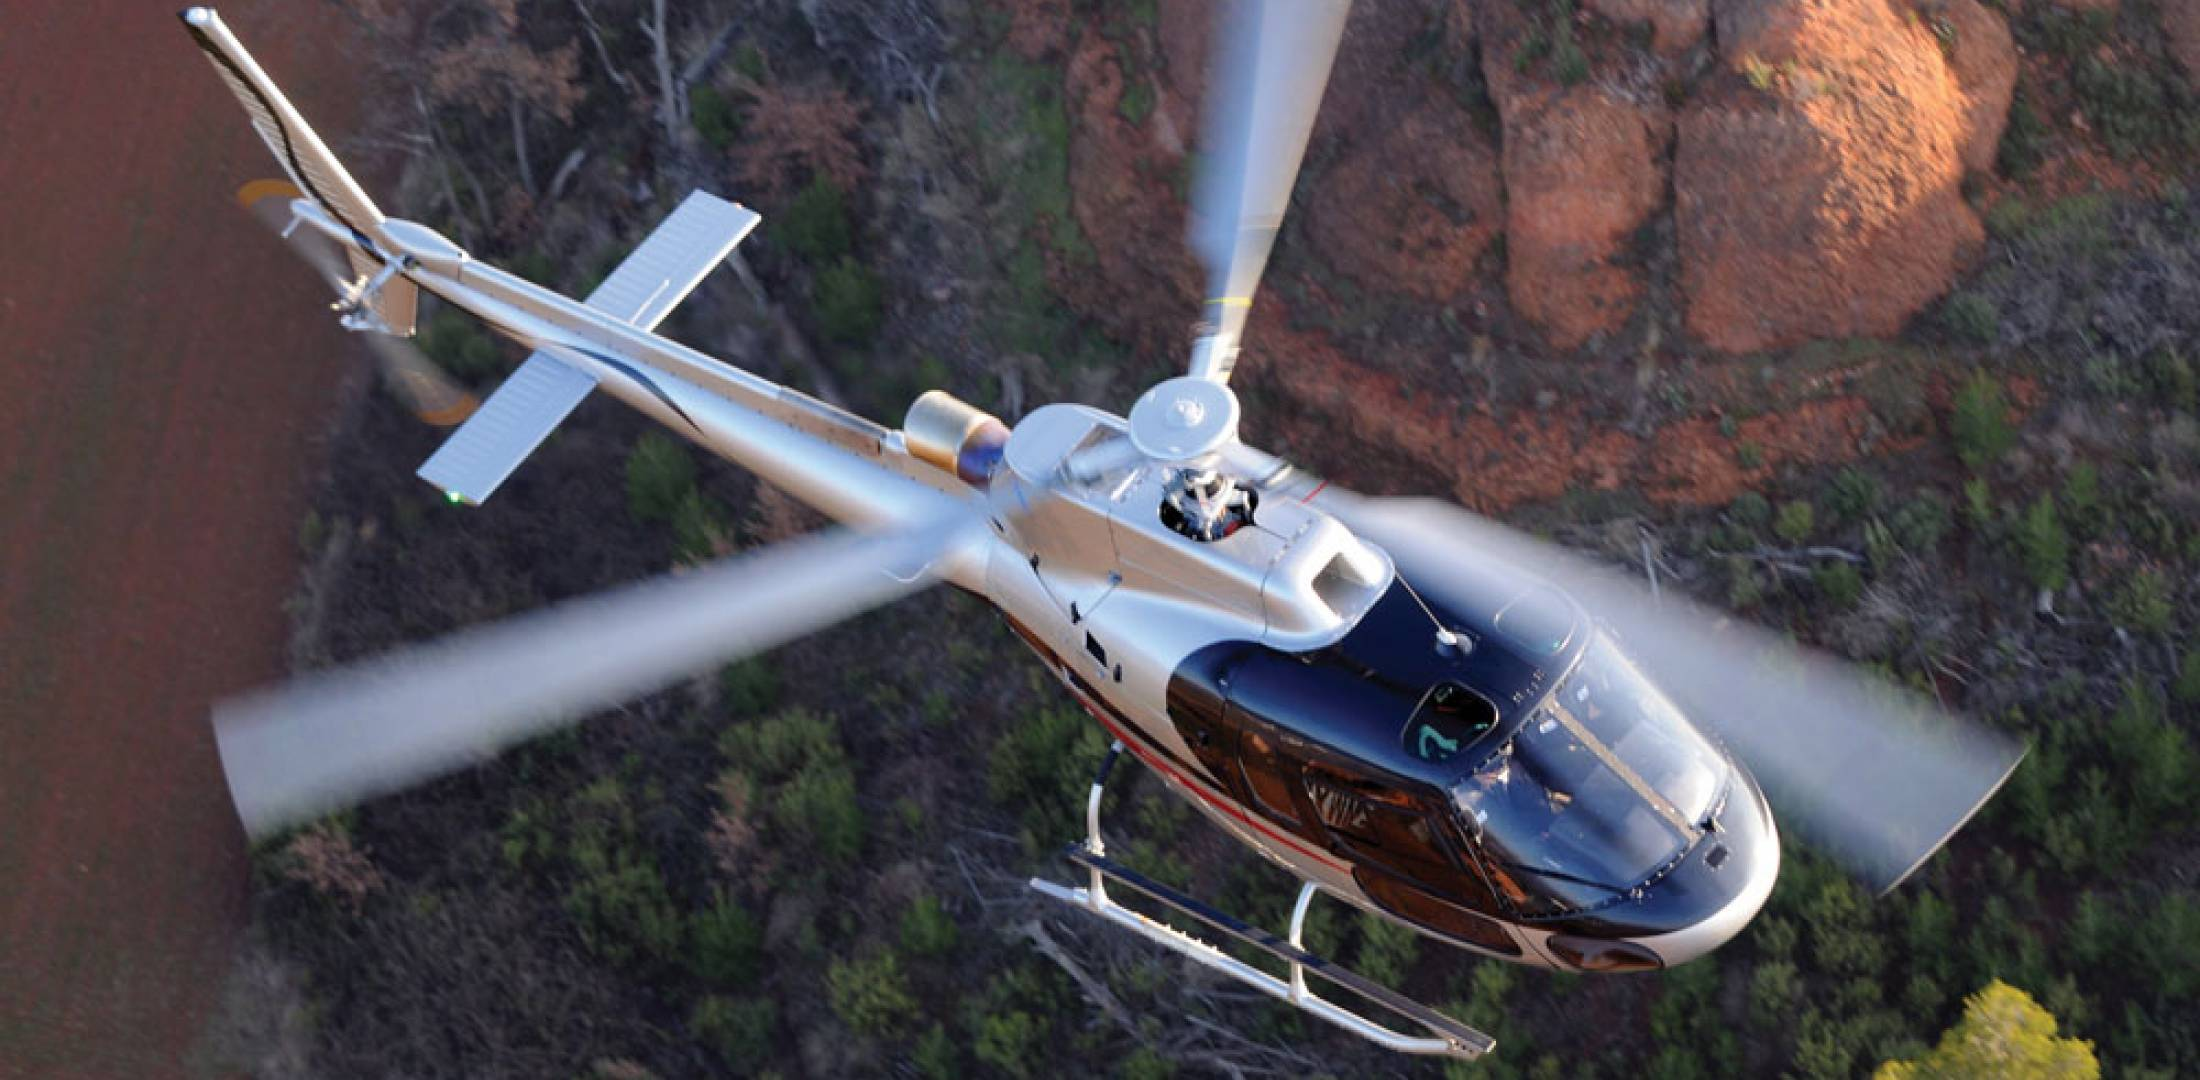 The AS350 B3e is ideal for passenger transport, EMS, aerial work, law enforcement and disaster management.